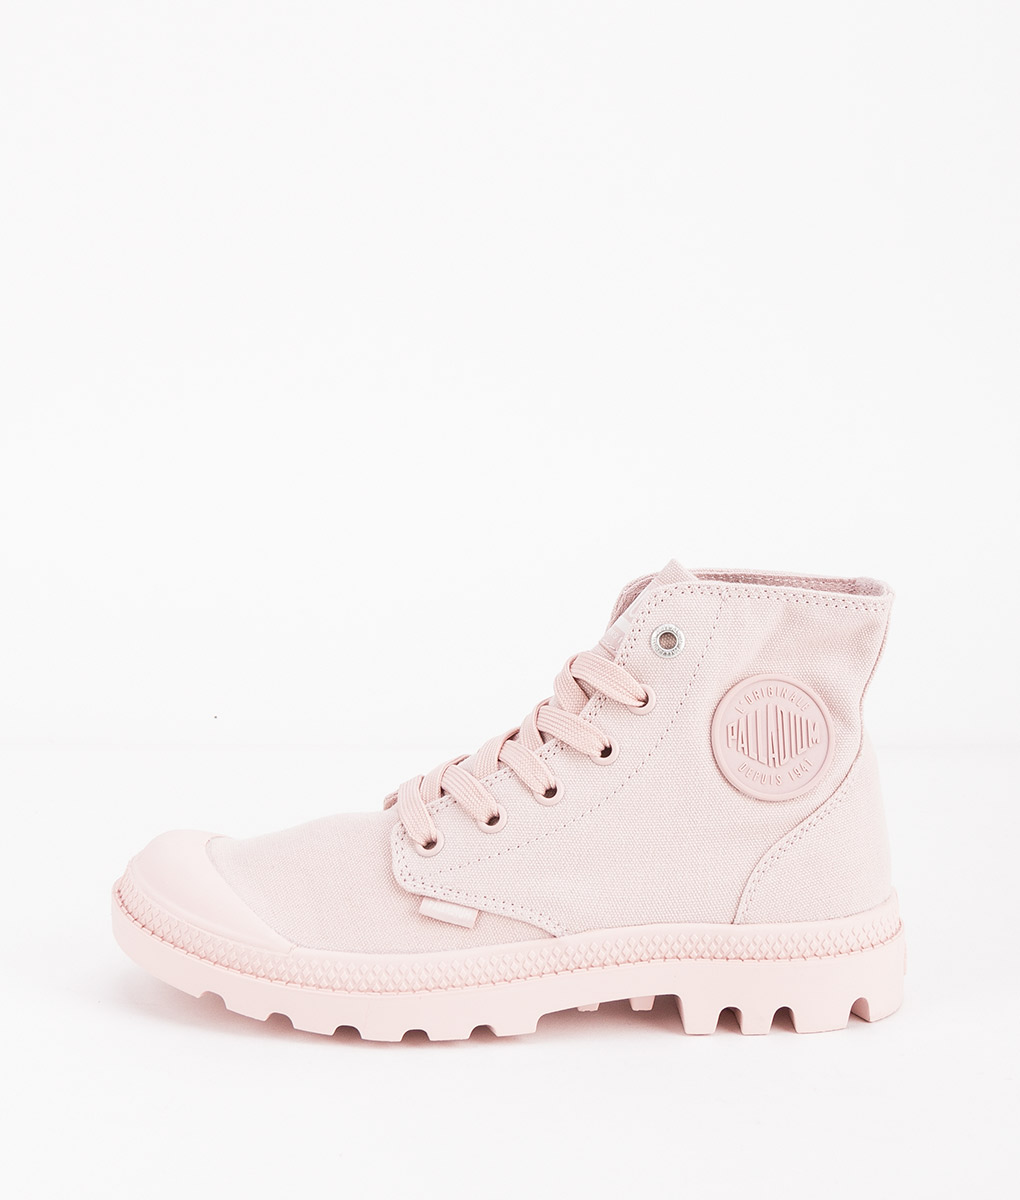 PALLADIUM Women Sneakers 73089 MONO CHROME, Peach Whip 74.99